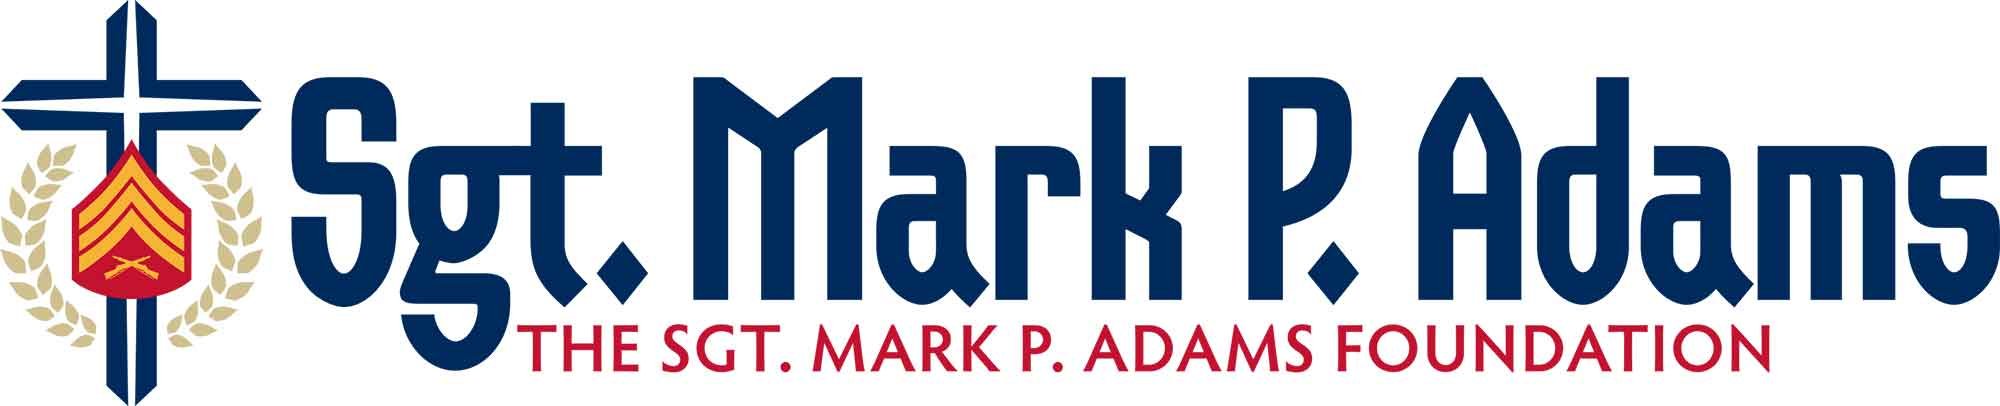 Sgt. Mark P. Adams Foundation